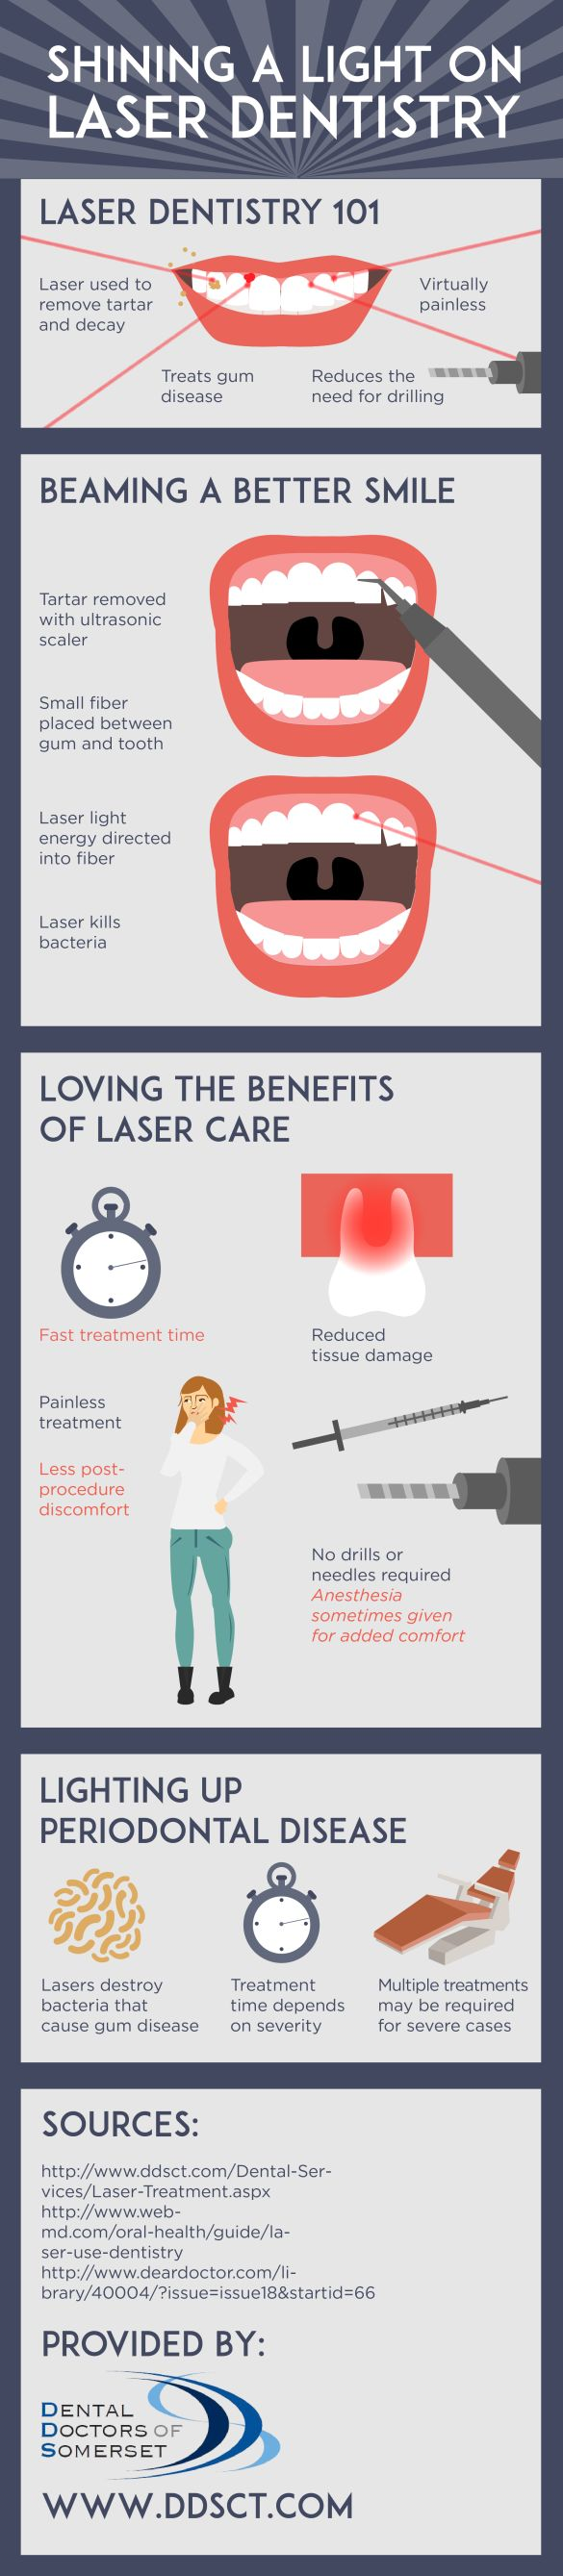 What is laser dentistry? Dentists can use a laser to expertly remove tartar and decay and treat other signs of gum disease! Take a look at this infographic from an orthodontist in Glastonbury for more facts about laser dentistry.